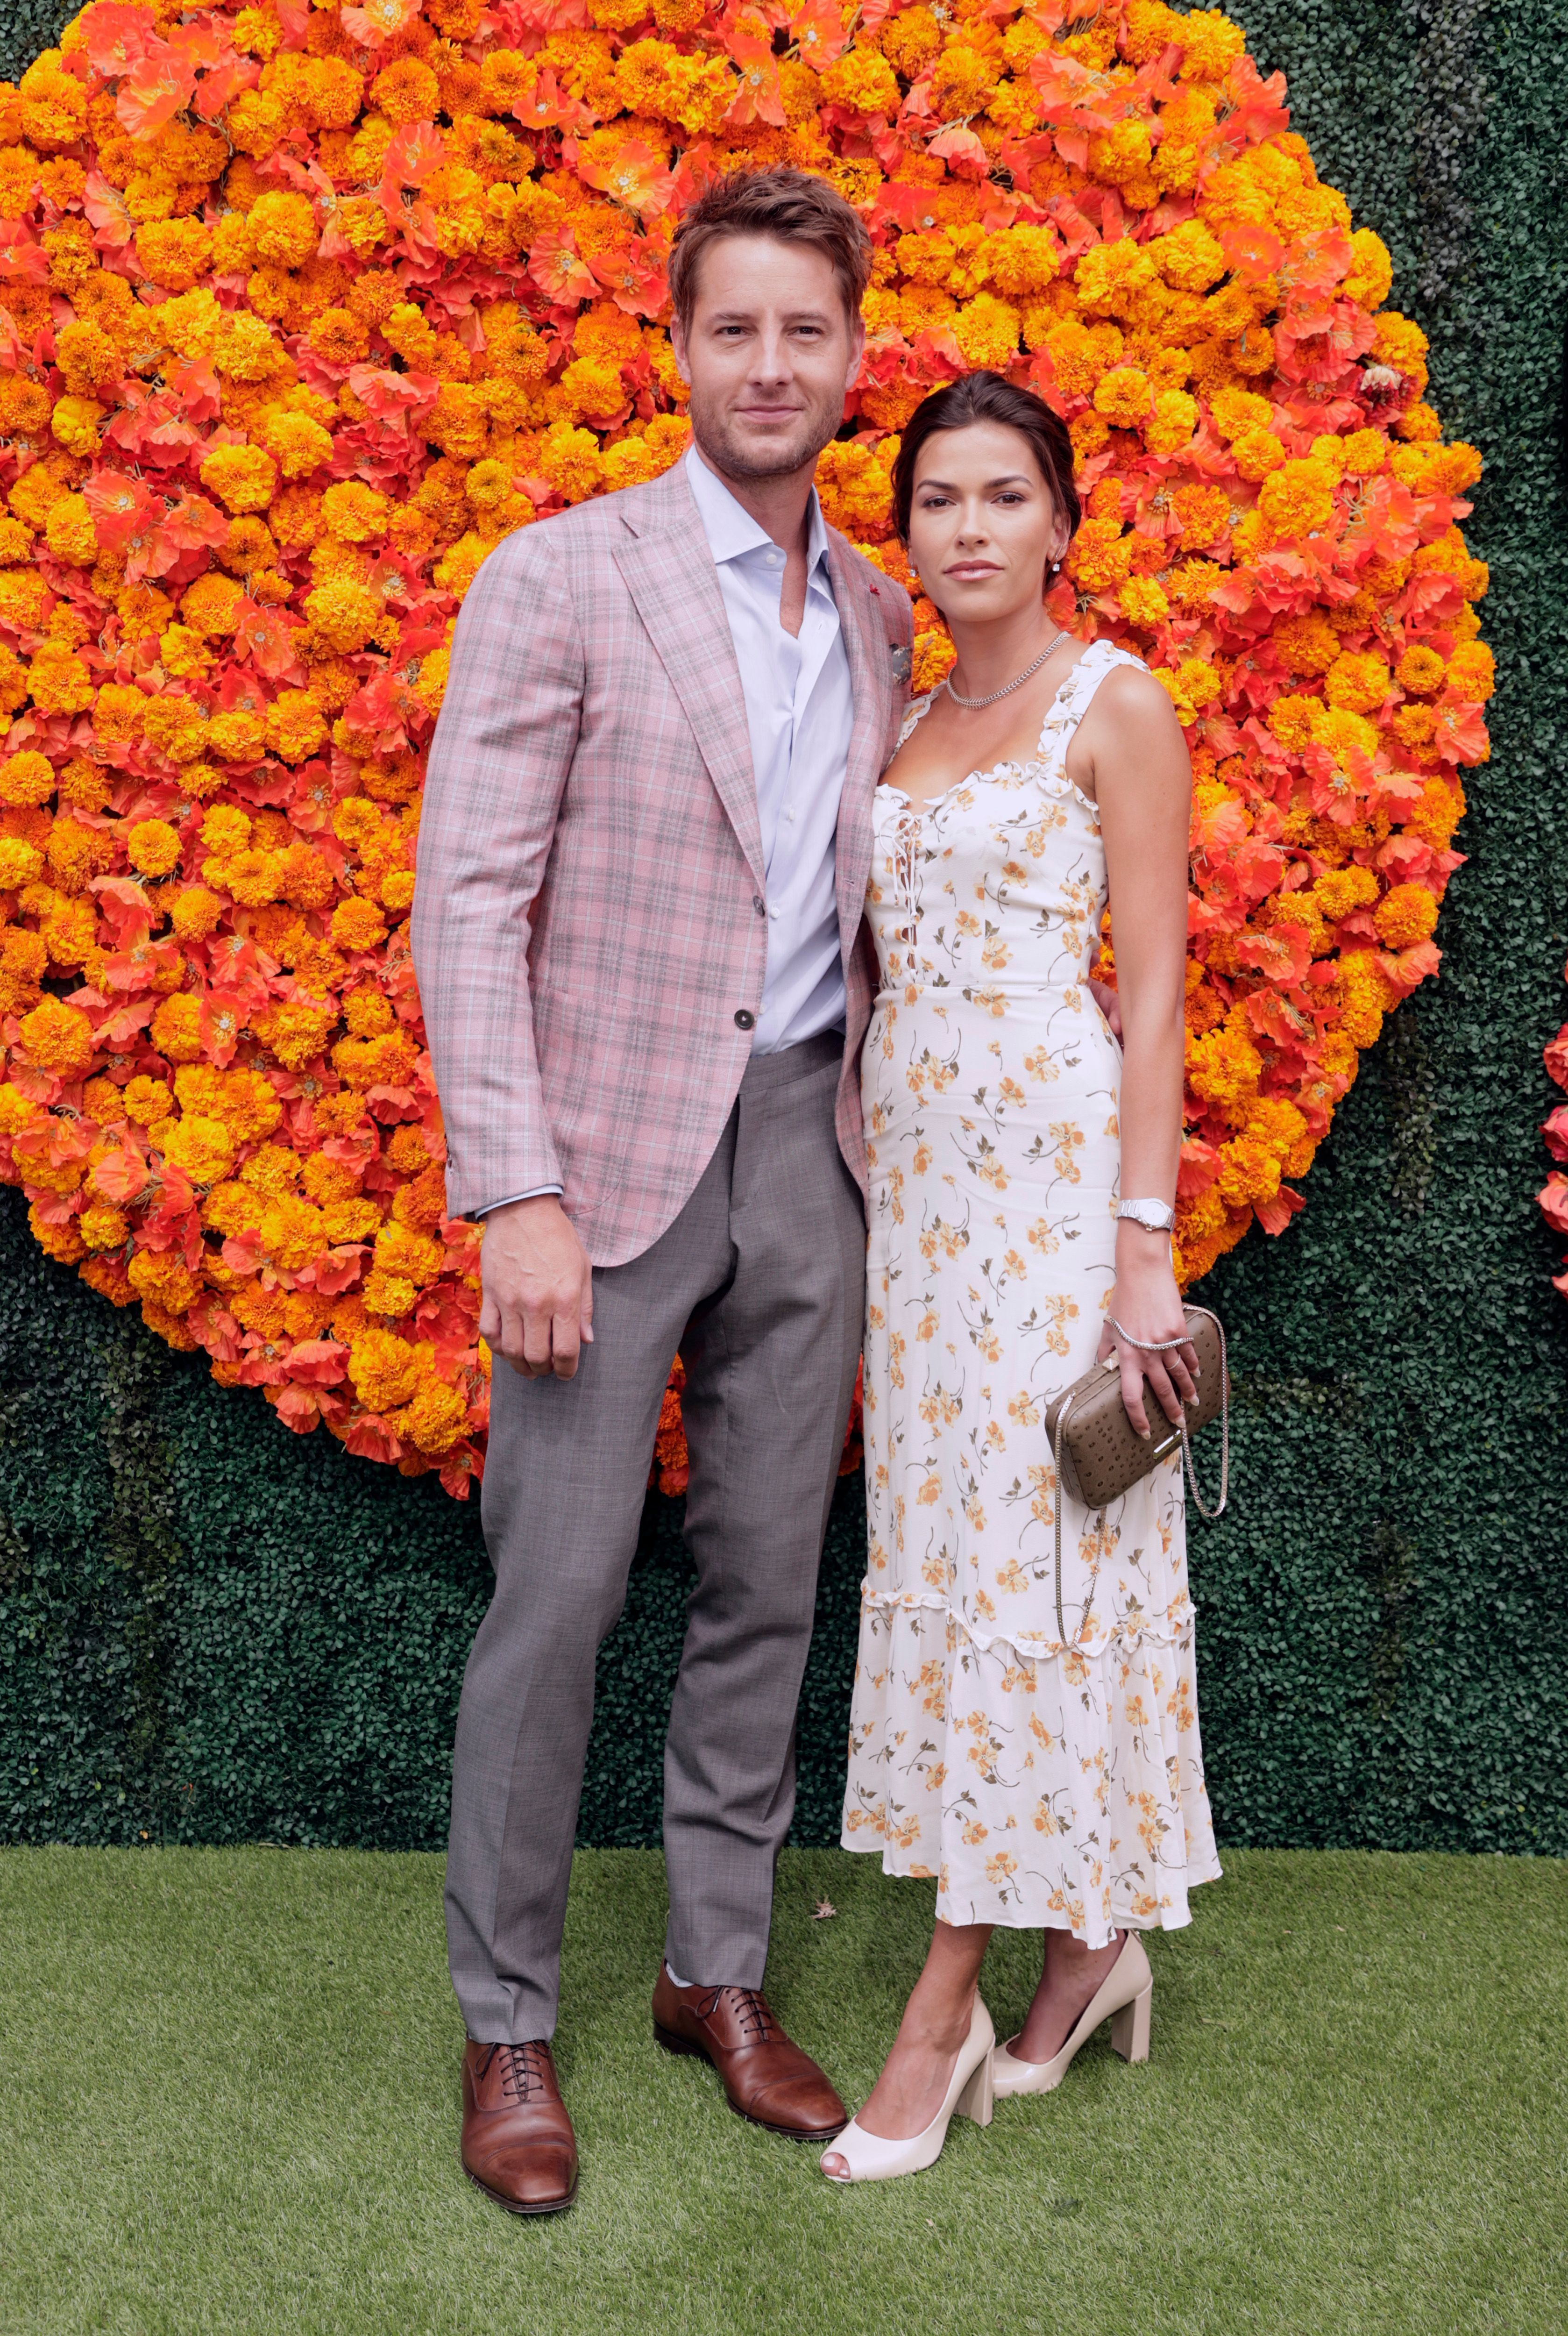 Justin Hartley and Sofia Pernas at the Veuve Clicquot Polo Classic event in California, 2021 | Photo: Getty Images